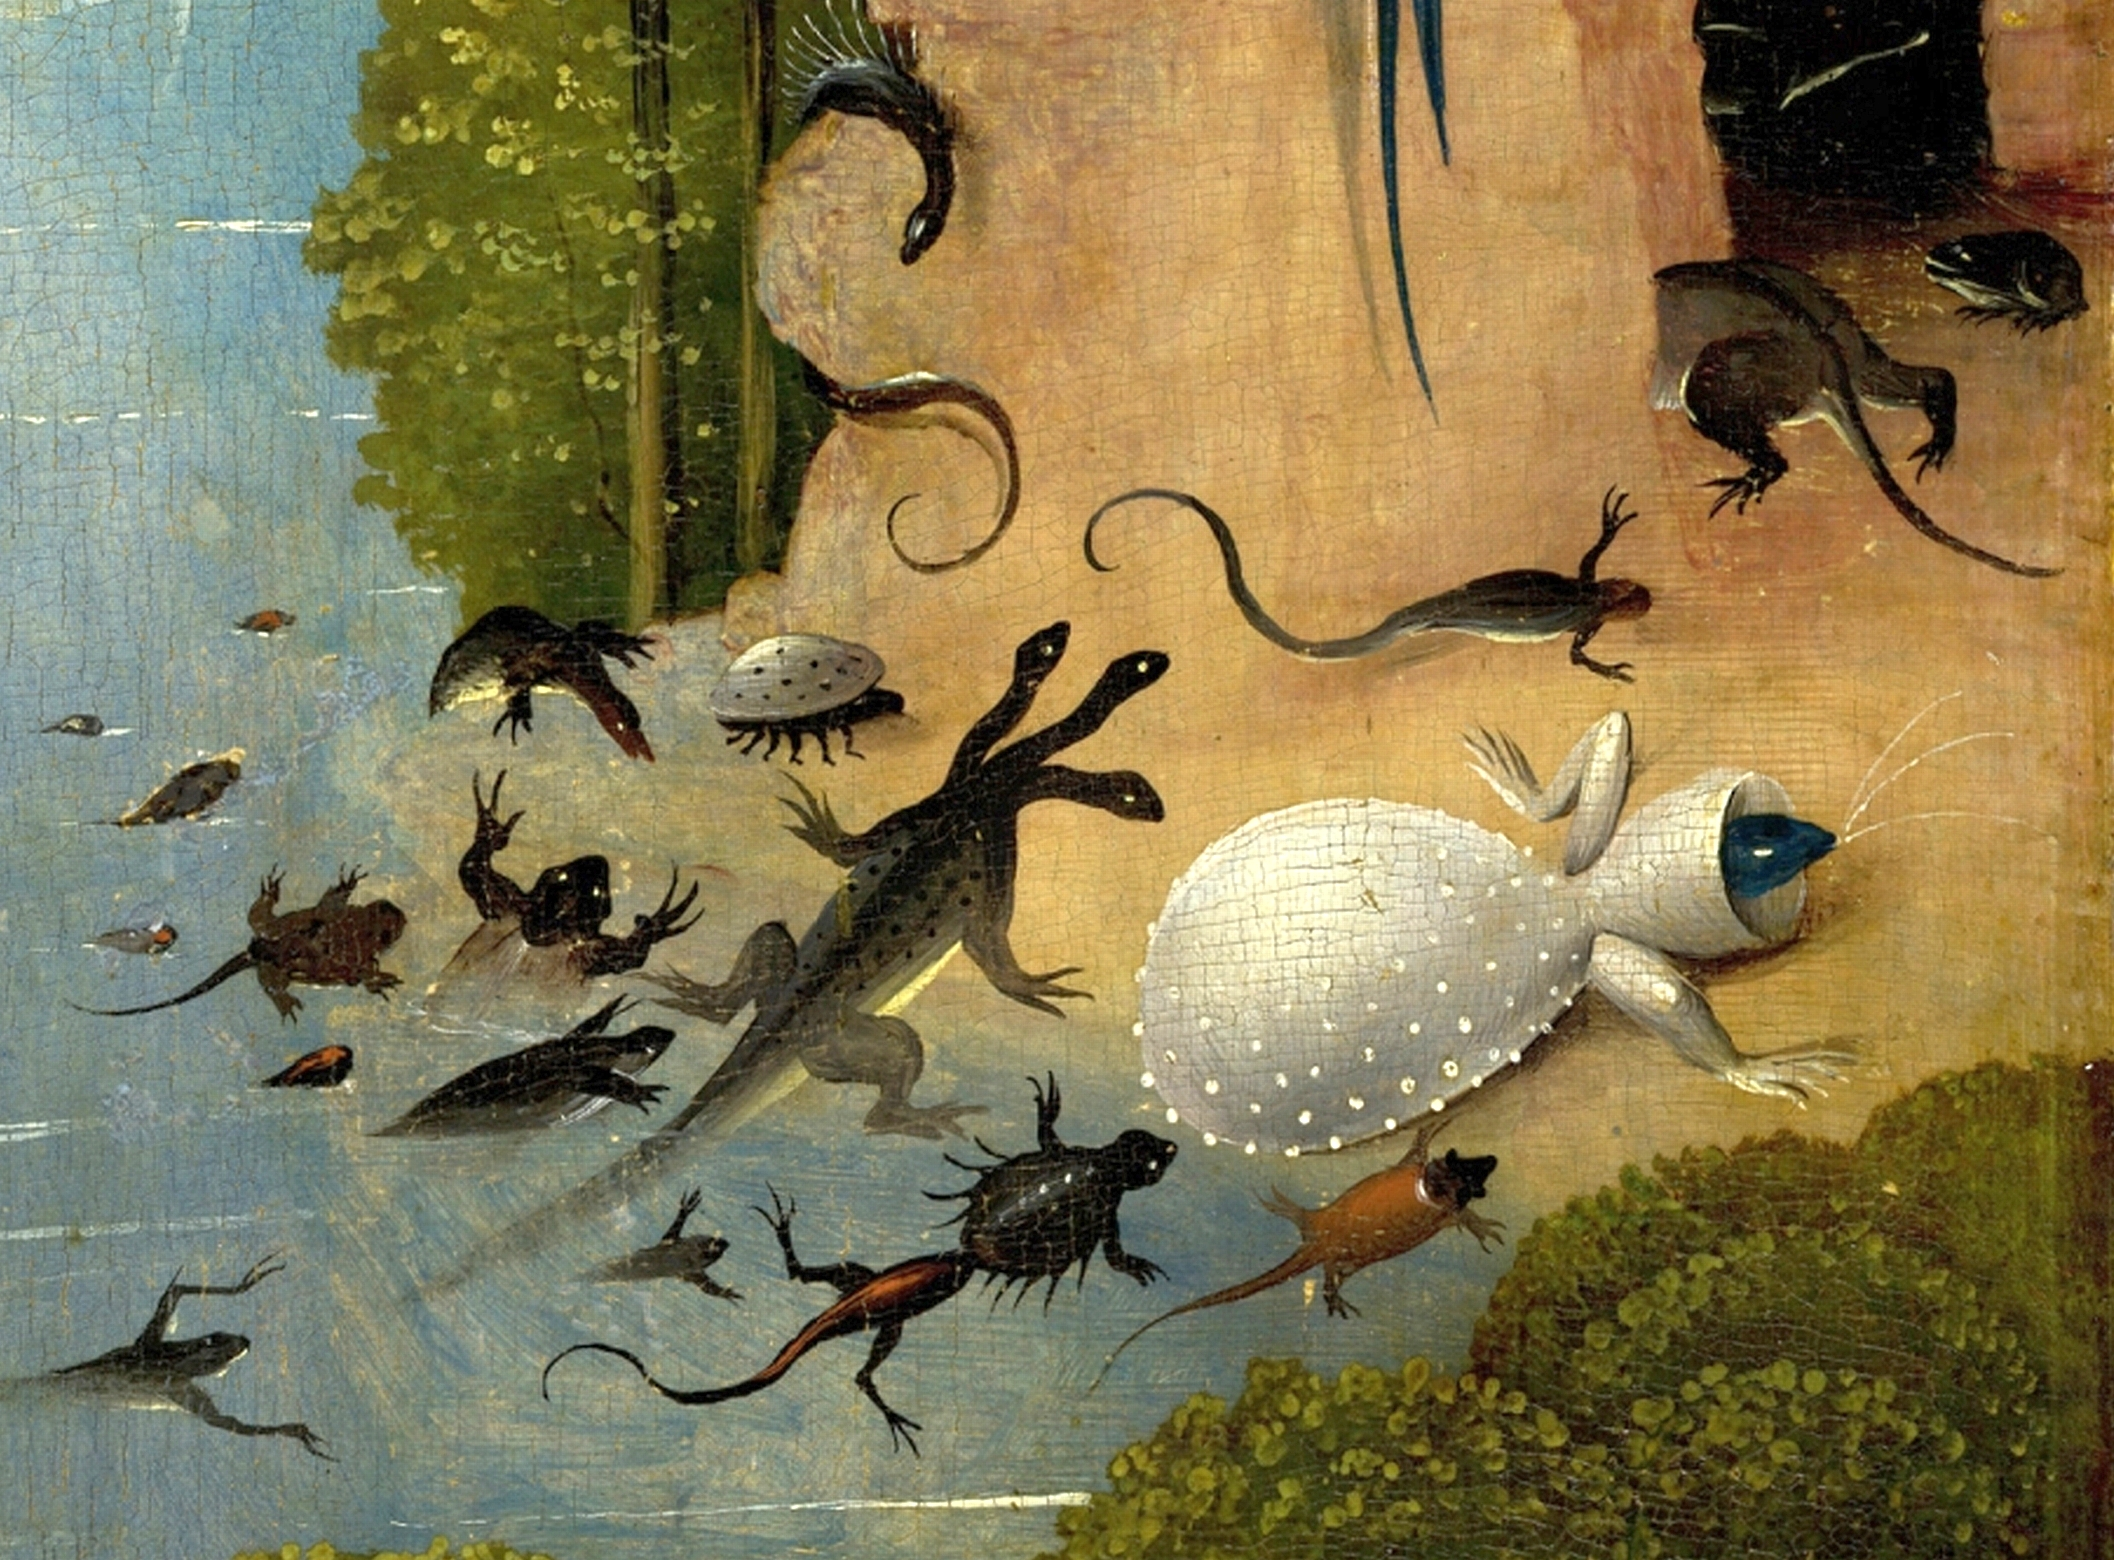 L'HUMANITÉ CONTRE LE VIVANT ? ET LE CAPITAL ? Bosch%2C_Hieronymus_-_The_Garden_of_Earthly_Delights%2C_left_panel_-_Detail_Amphibia_and_fish